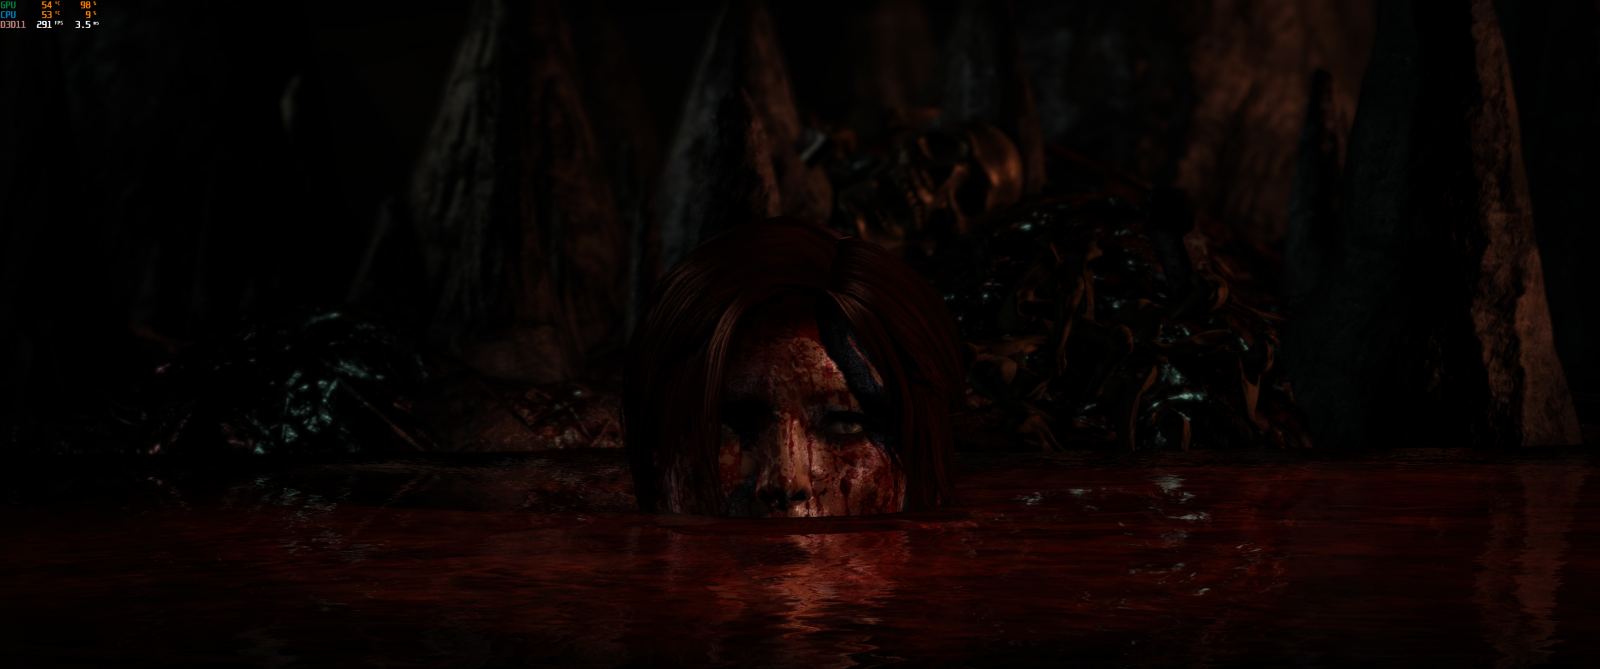 TombRaider_2021_06_26_16_27_46_576.png